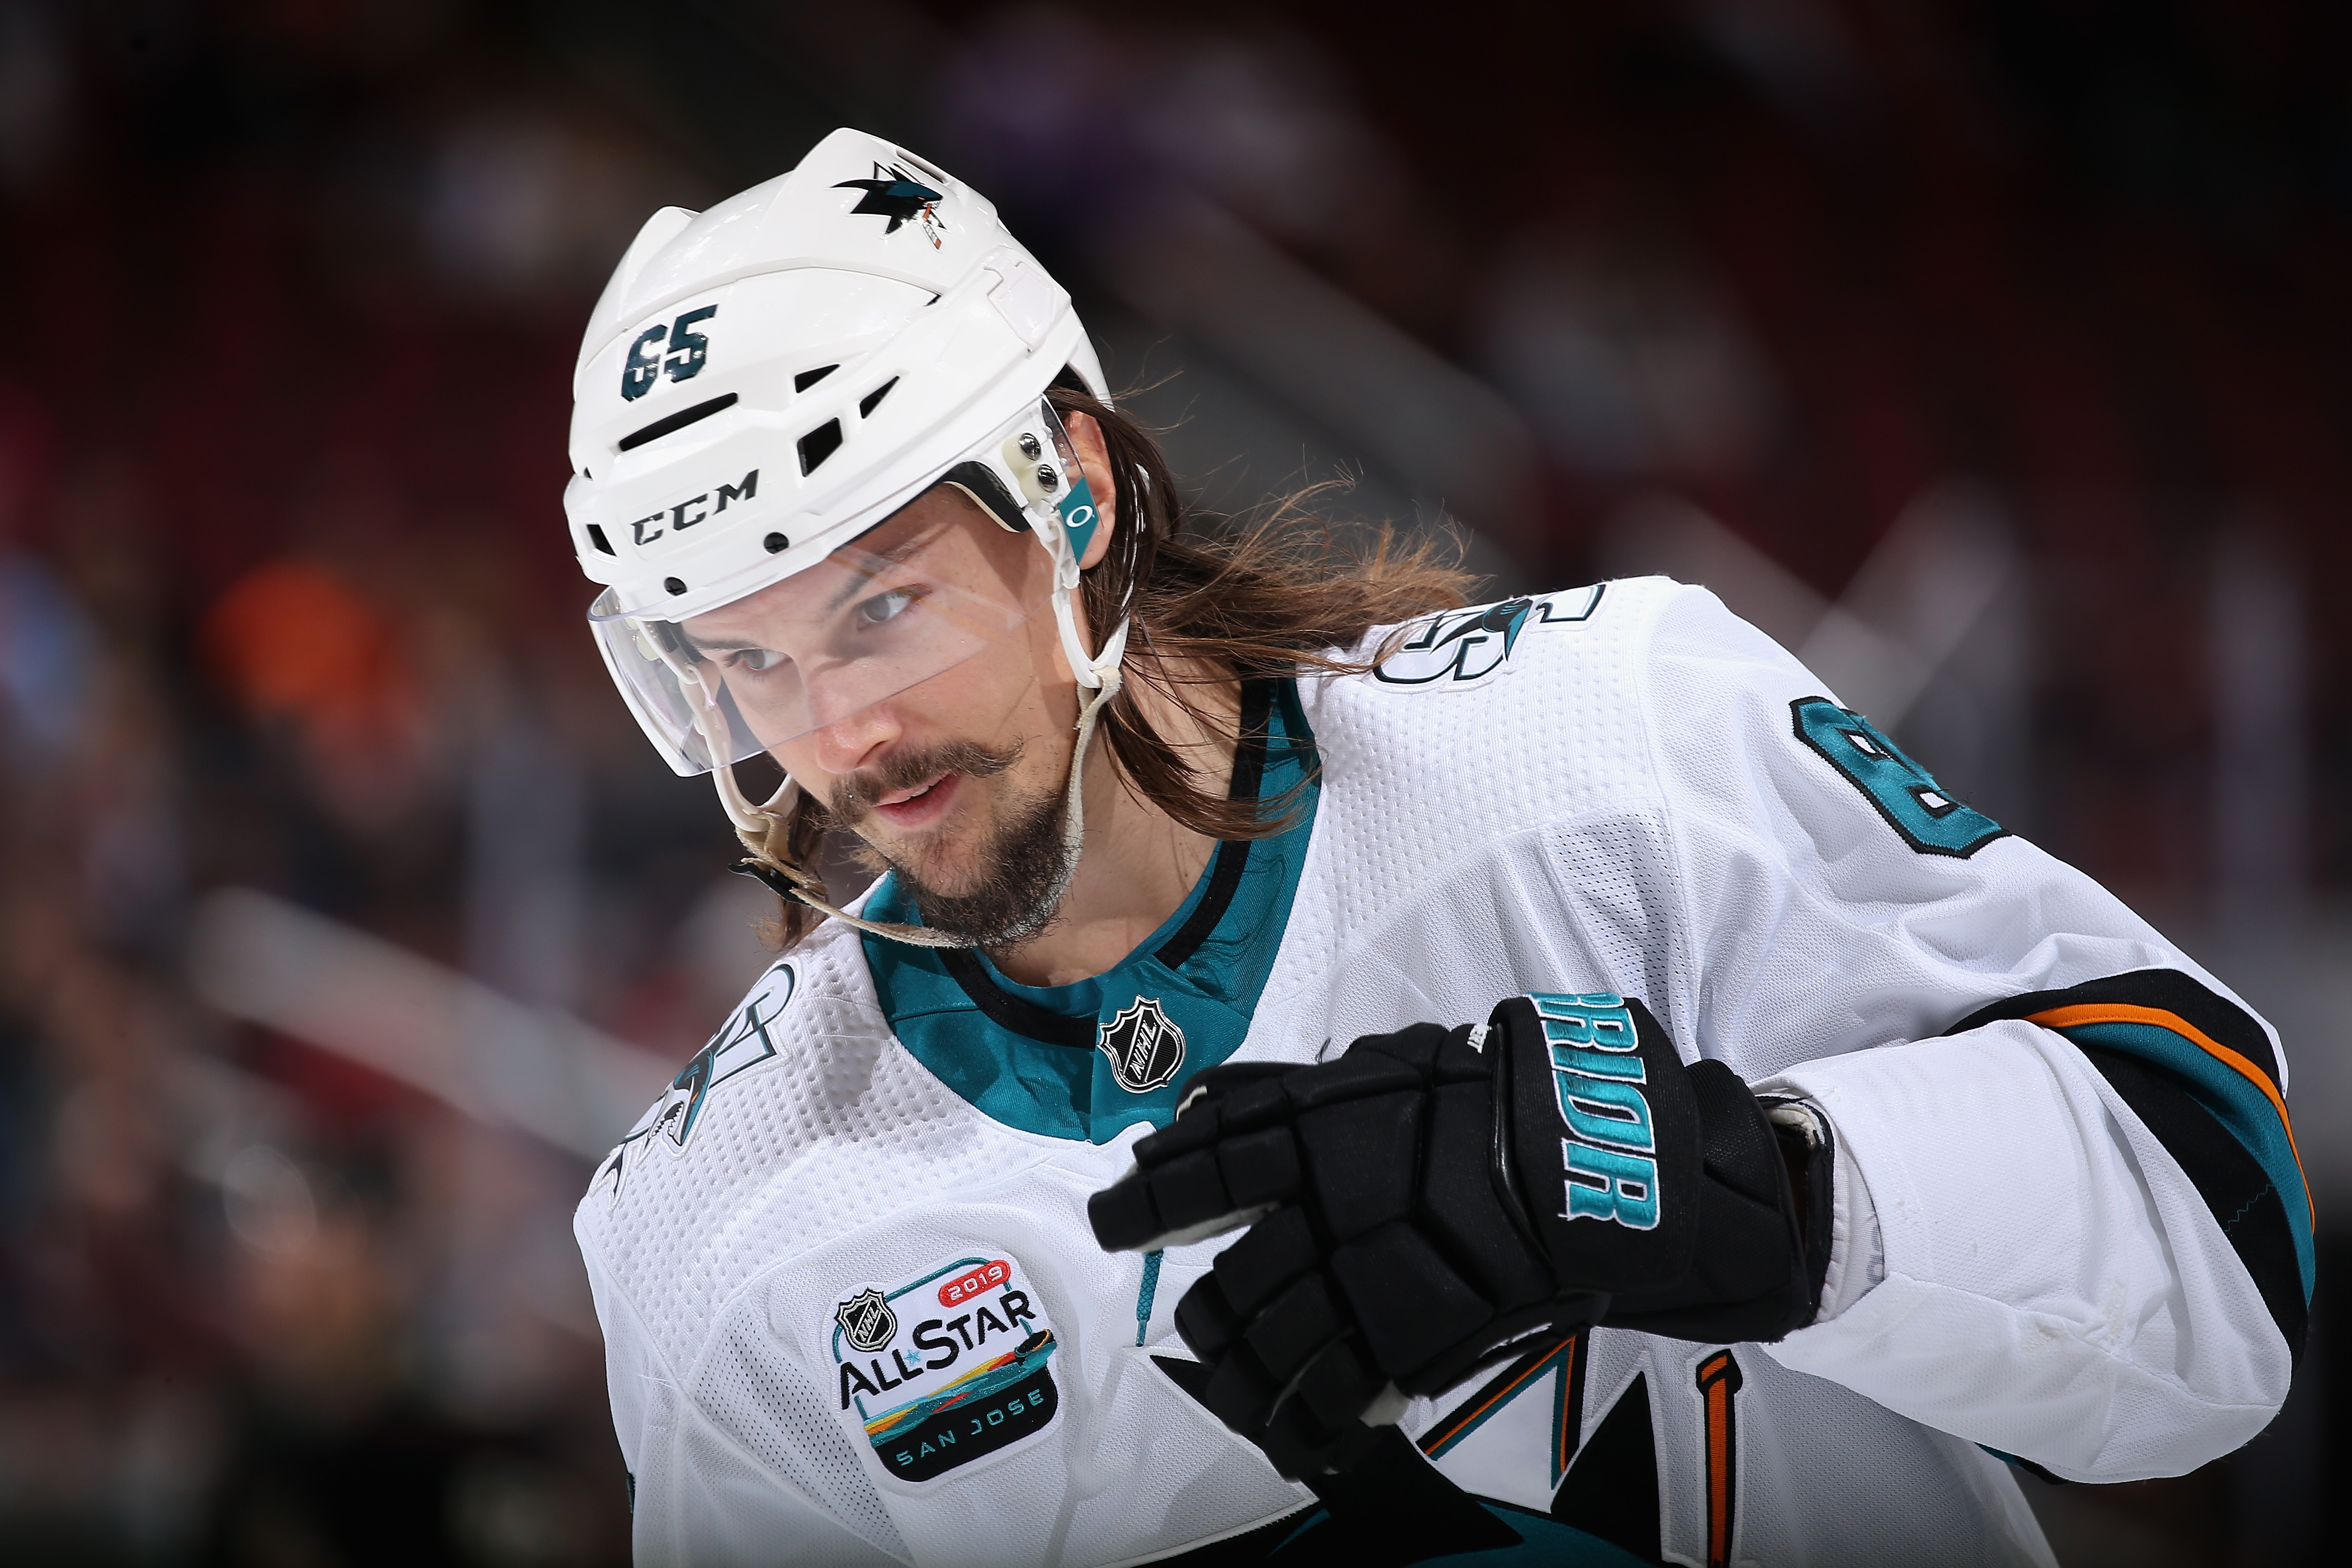 GLENDALE, ARIZONA - DECEMBER 08: Erik Karlsson #65 of the San Jose Sharks skates on the ice during the first period of the NHL game against the Arizona Coyotes at Gila River Arena on December 8, 2018 in Glendale, Arizona.